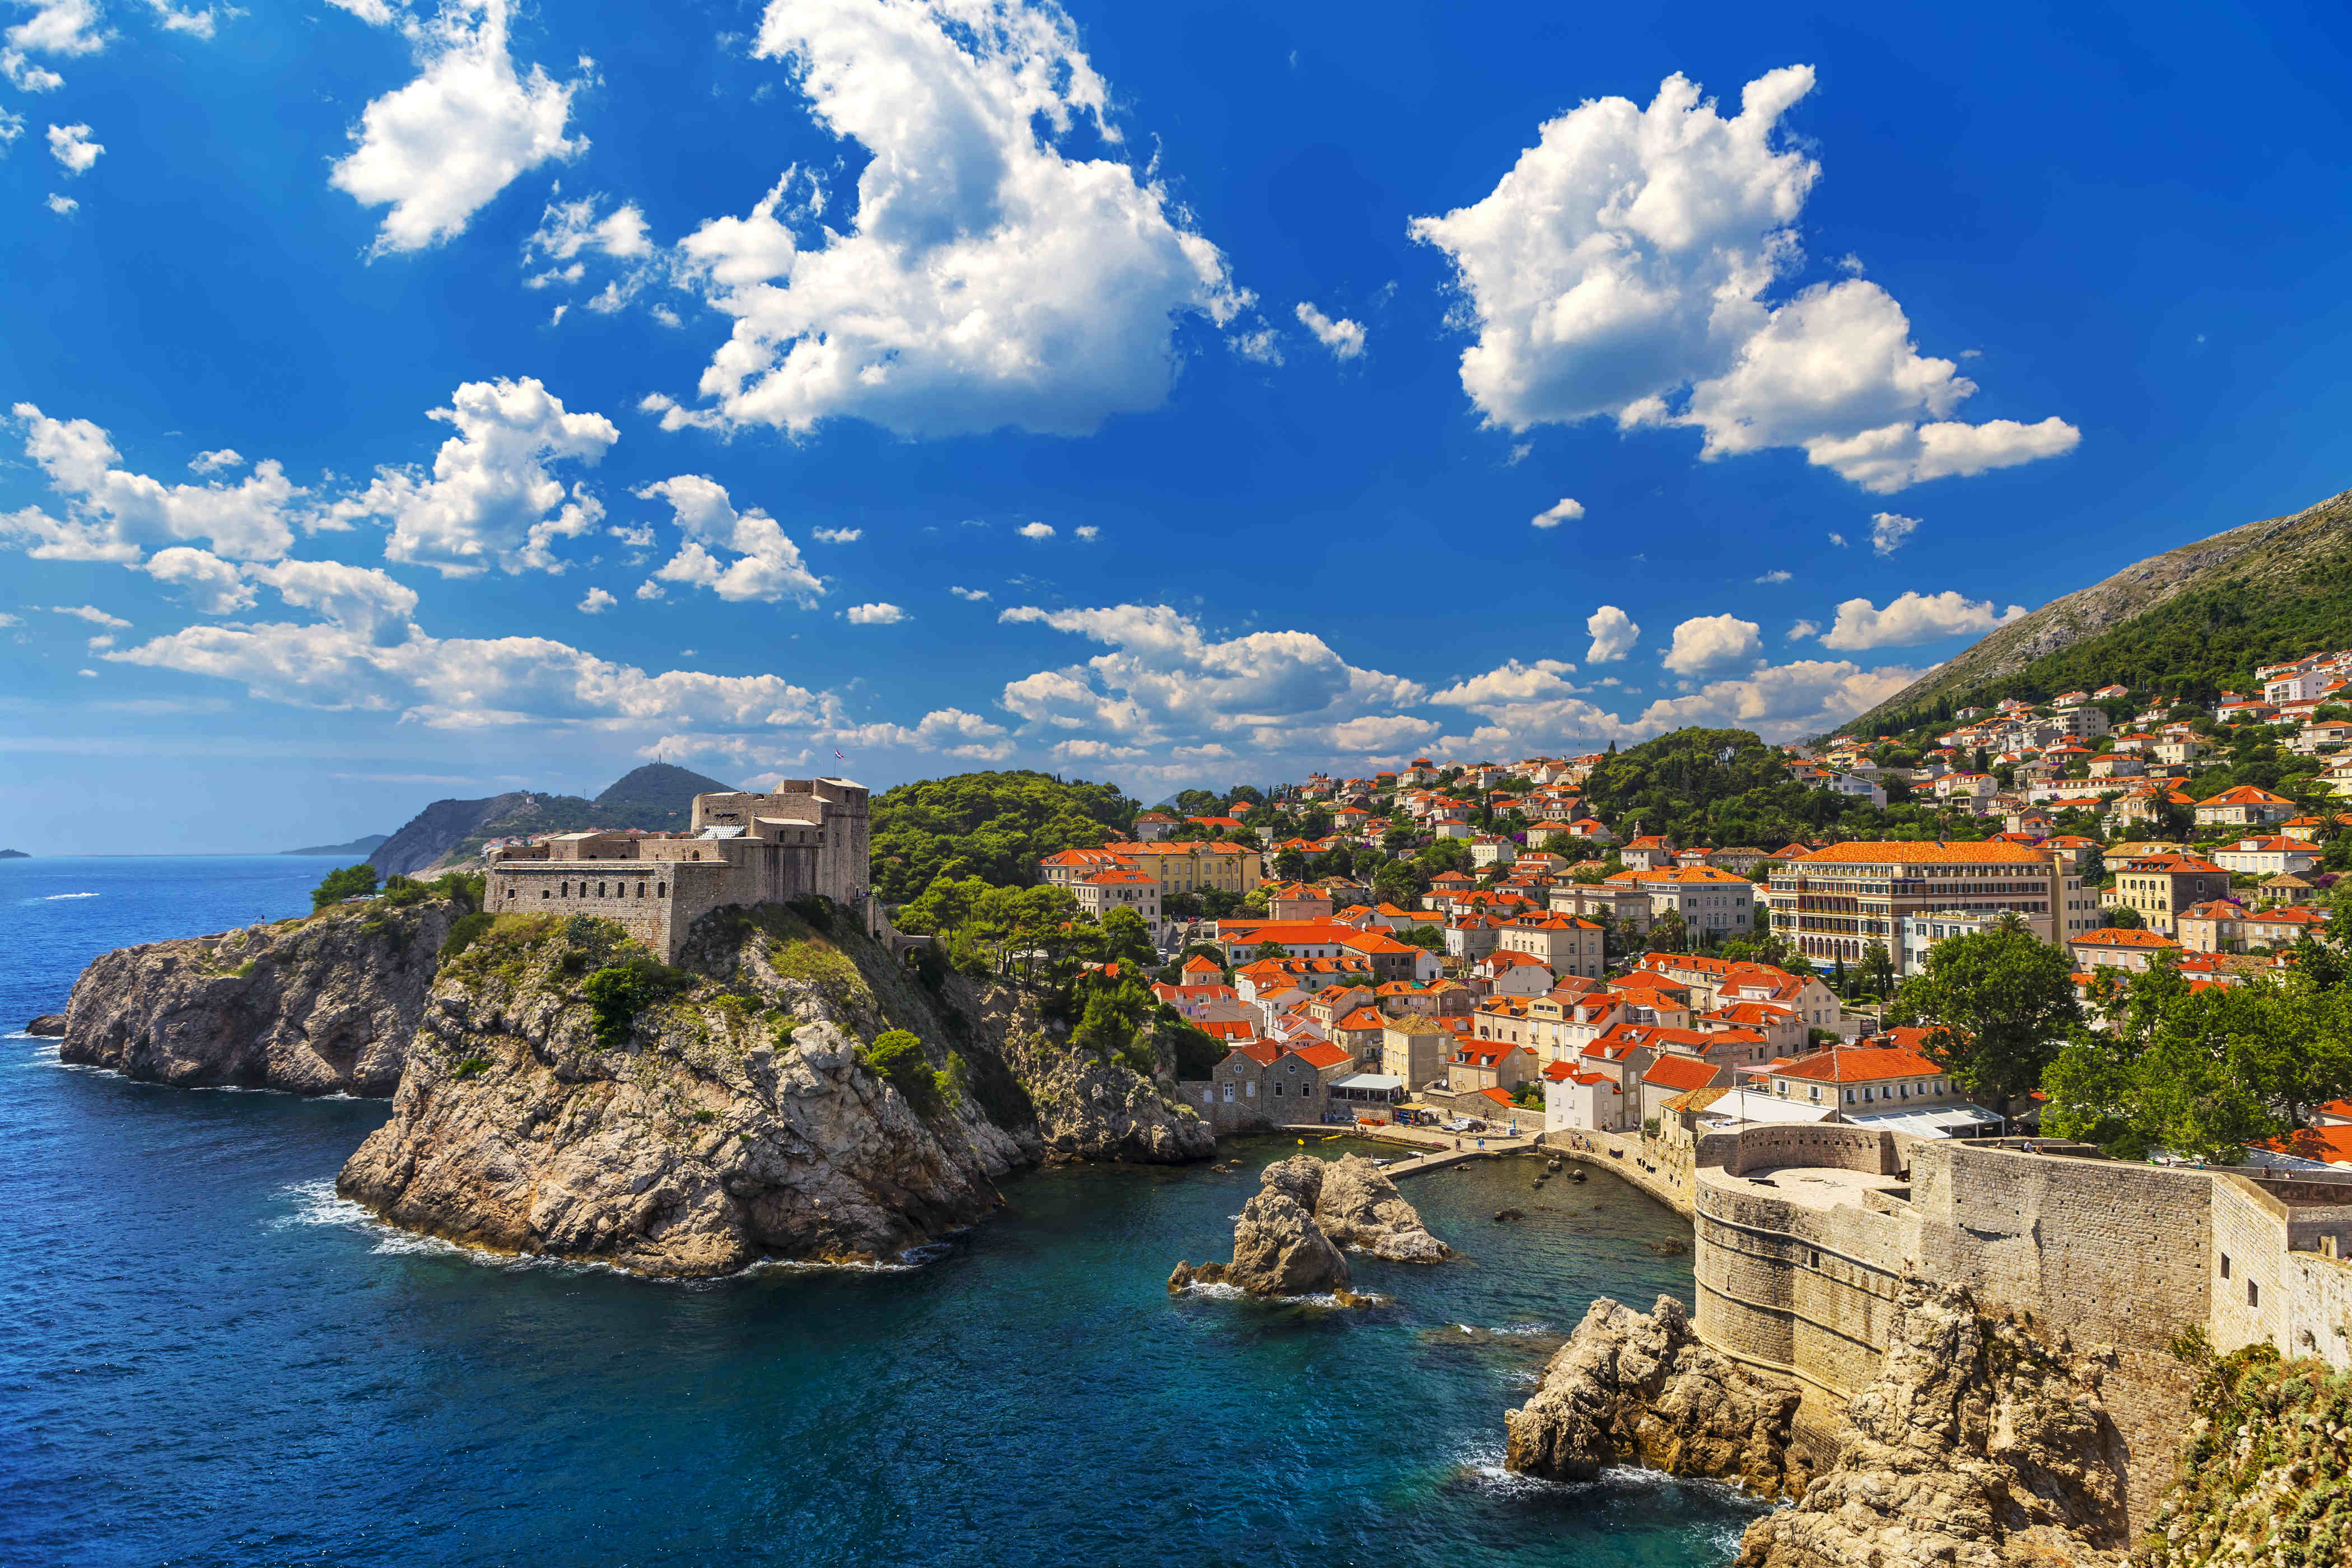 dubrovnik has the most 5